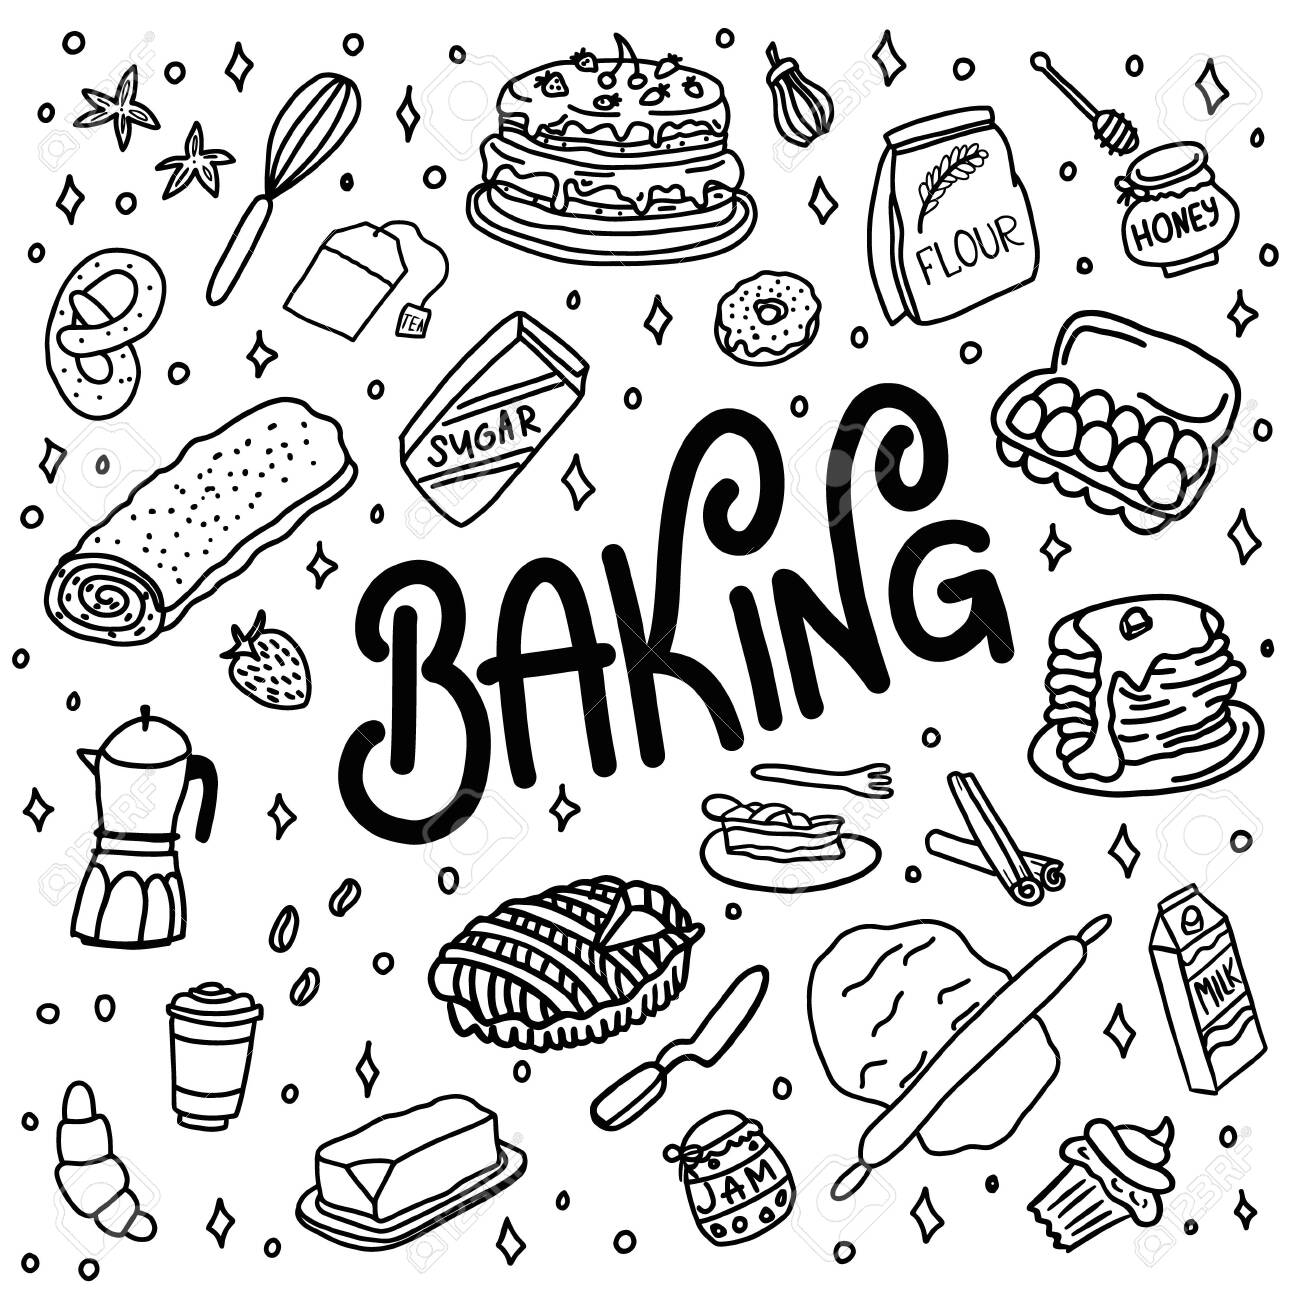 Hand drawn doodle baking, dishes and kitchenware. - 151200953